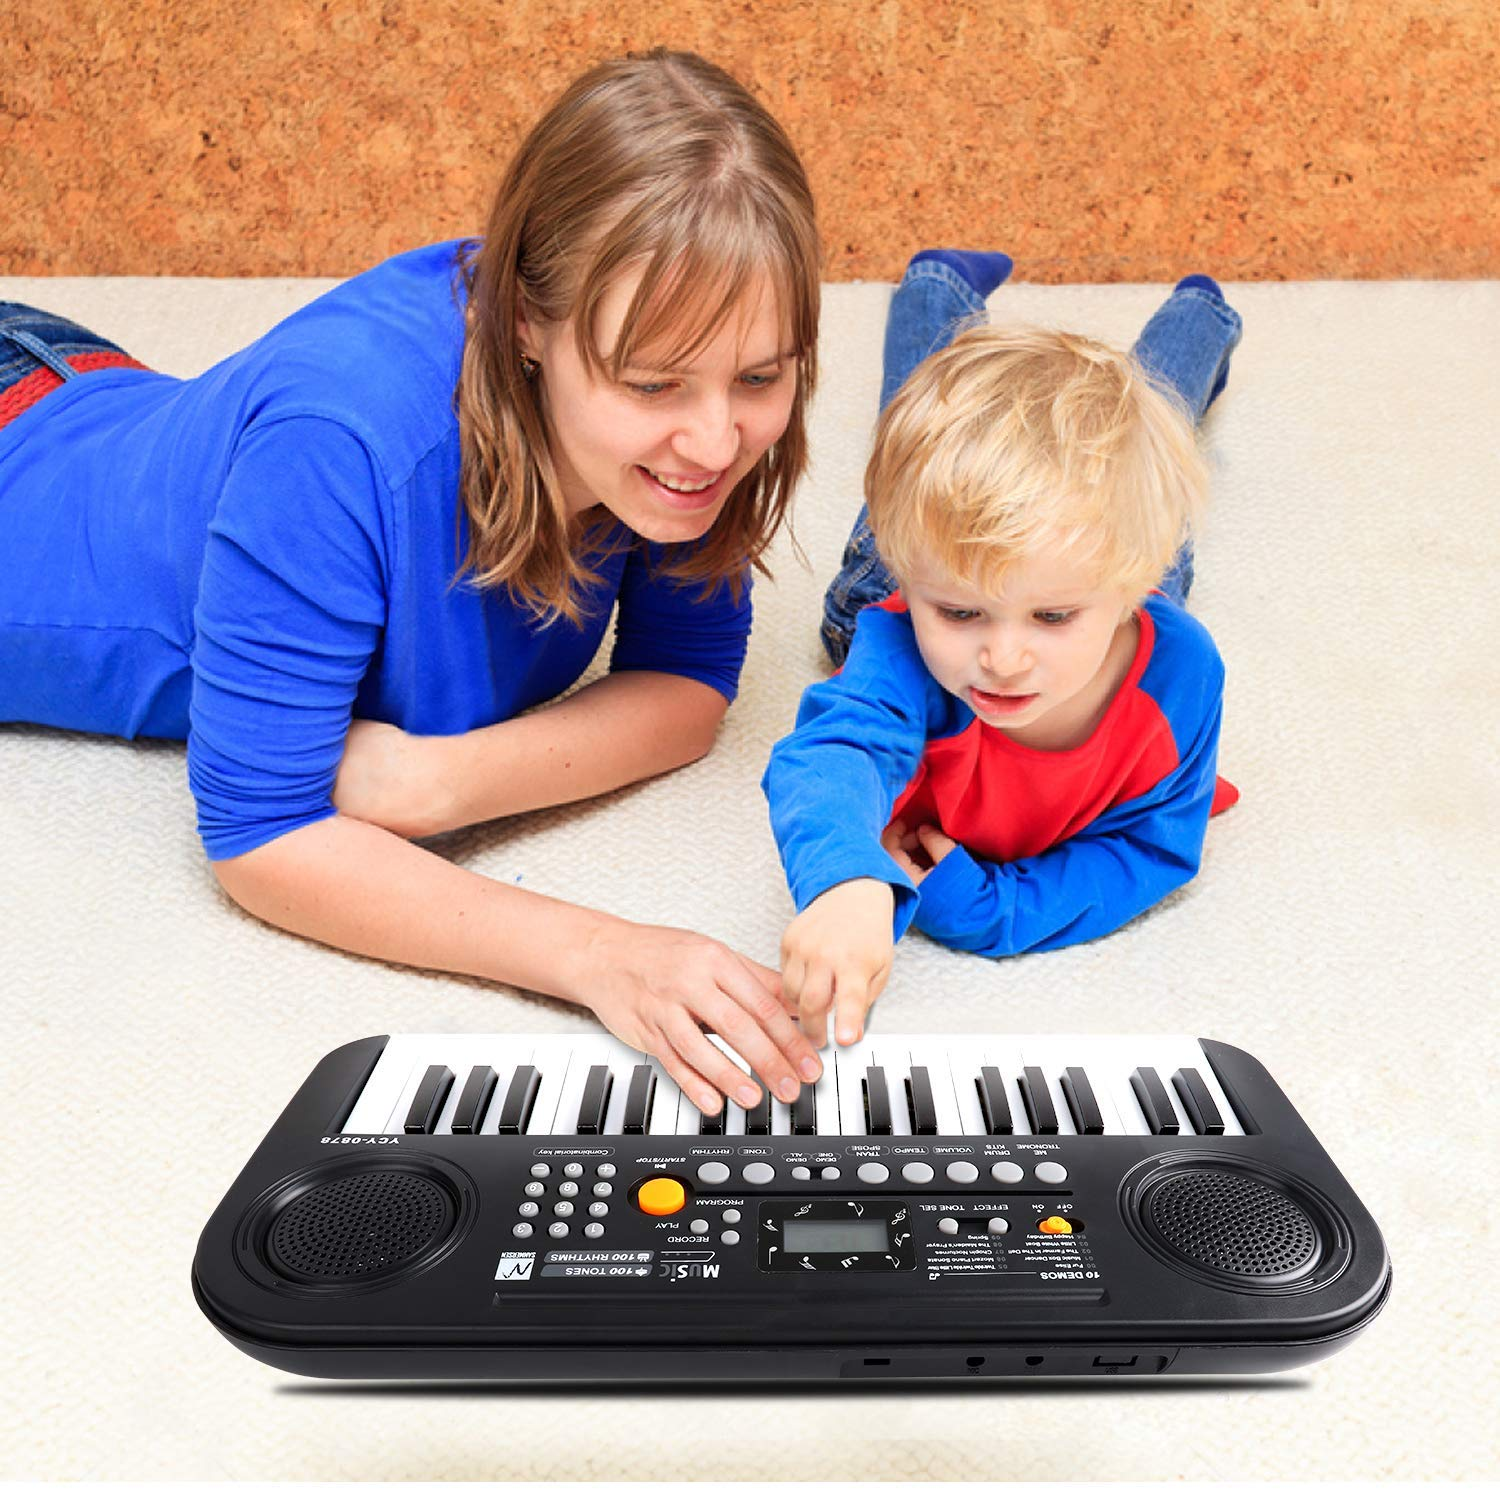 TWFRIC Kids Piano Keyboard, 37 Keys Dual-Speakers Piano for Kids LCD Screen Display Portable Keyboard 2019 Newest Piano Keyboards Music Educational Toy for Boys Girls Child (Black) by TWFRIC (Image #3)